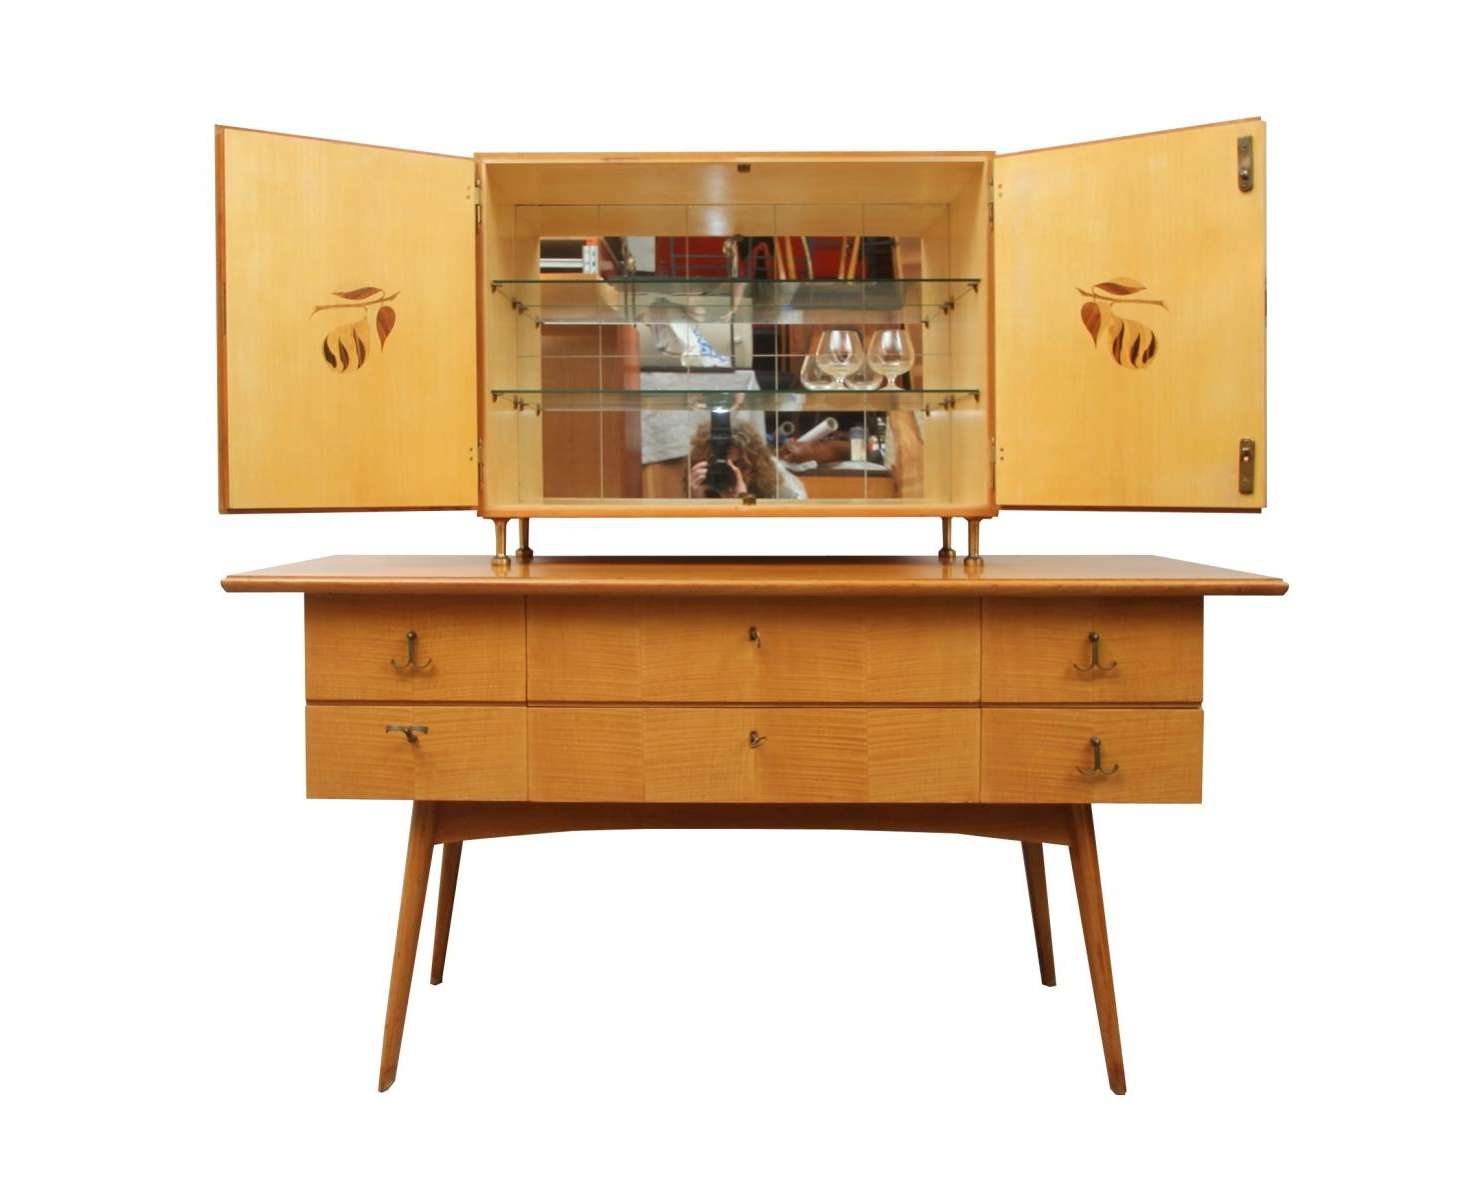 Cherry Wood Sideboard And Bar Cabinet, 1950s For Sale At Pamono Inside Sideboards Bar Cabinet (View 8 of 20)